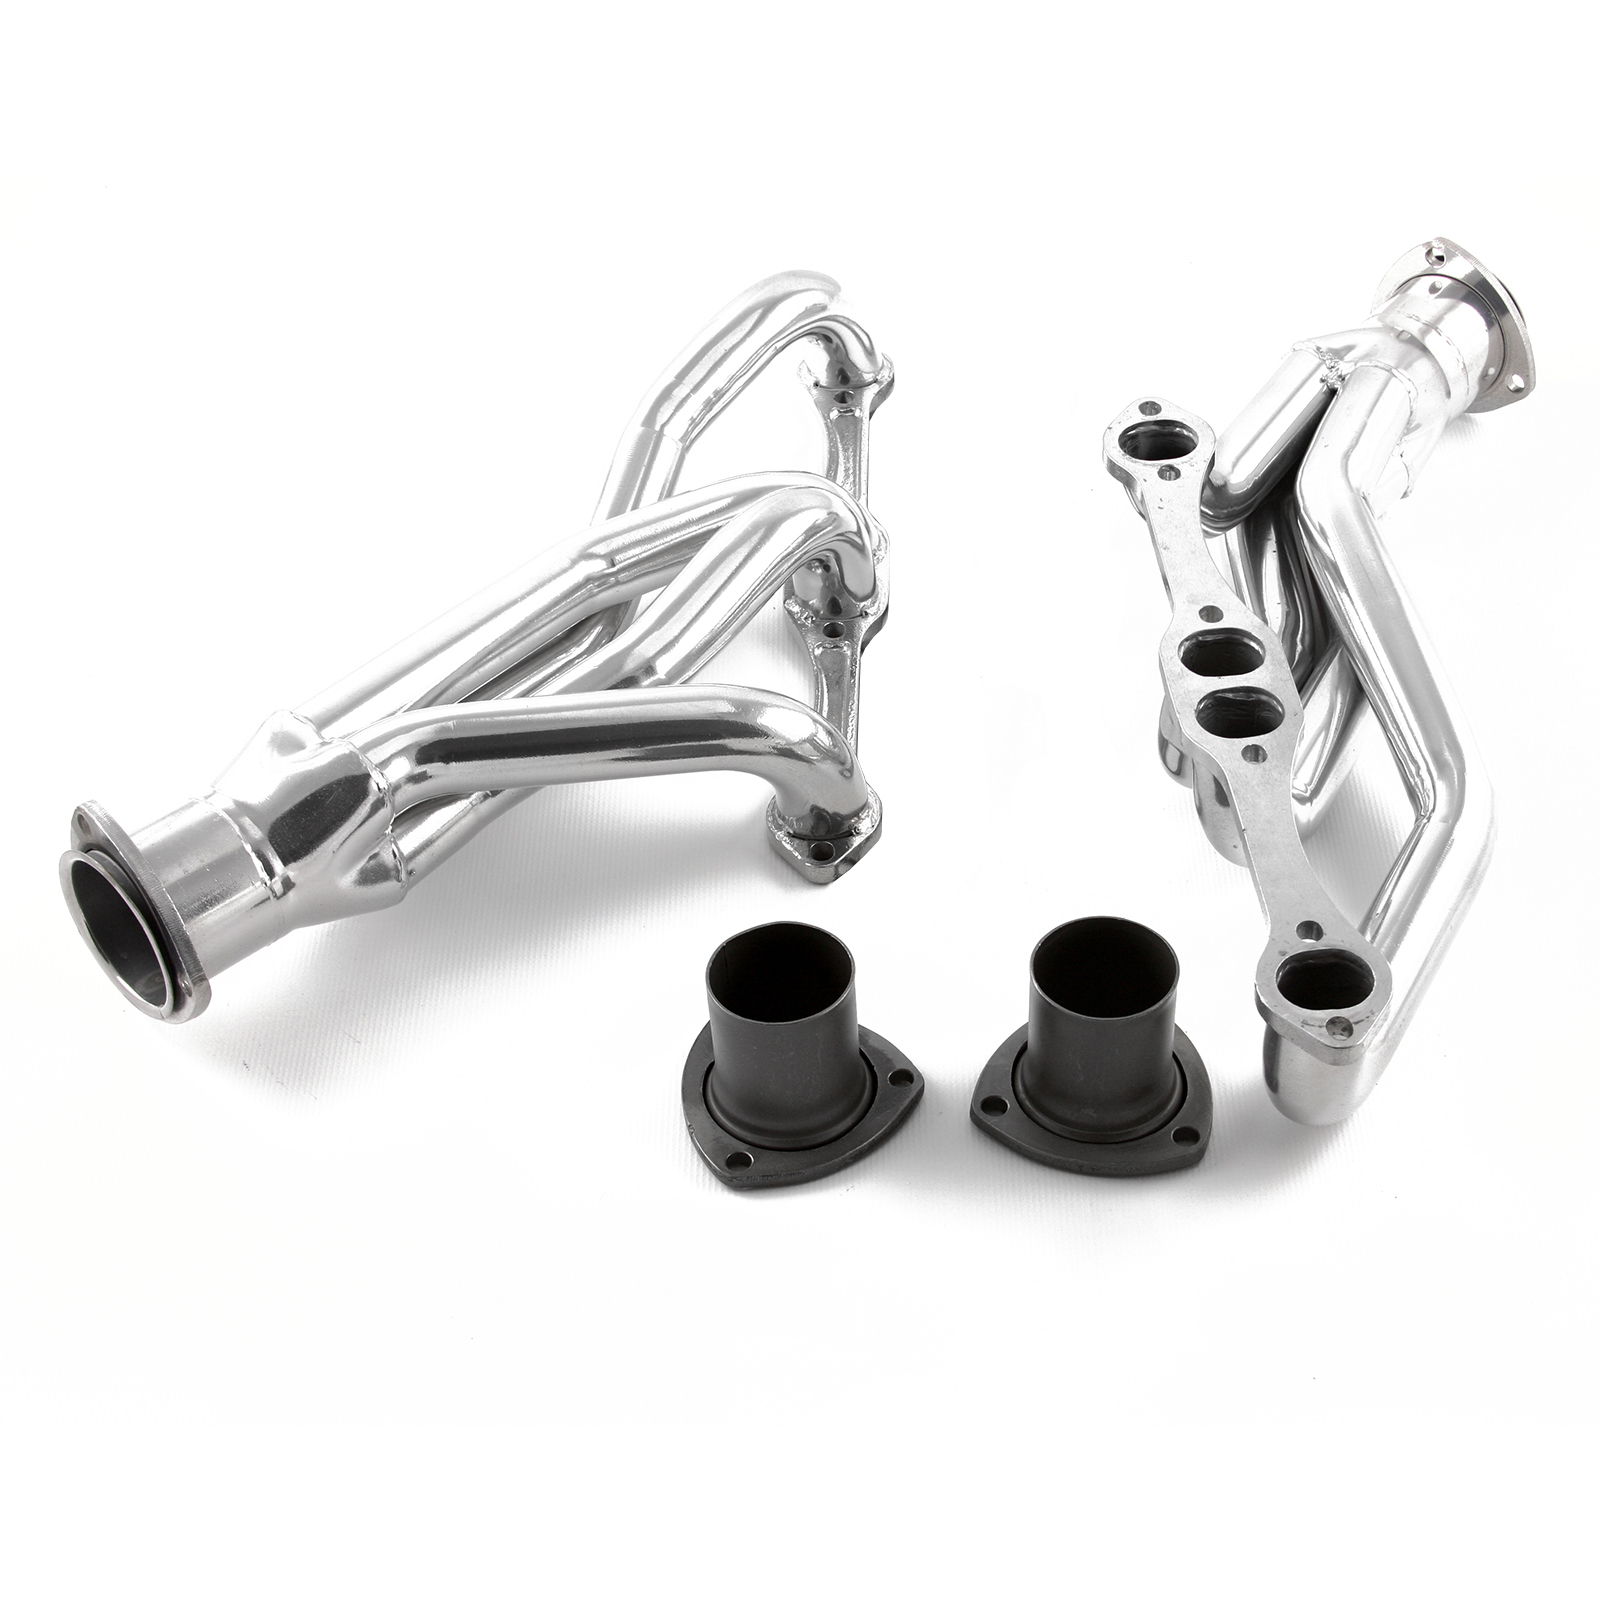 Chevy SBC 350 Chevelle Camaro 1967-81 Ceramic Coated Exhaust Headers